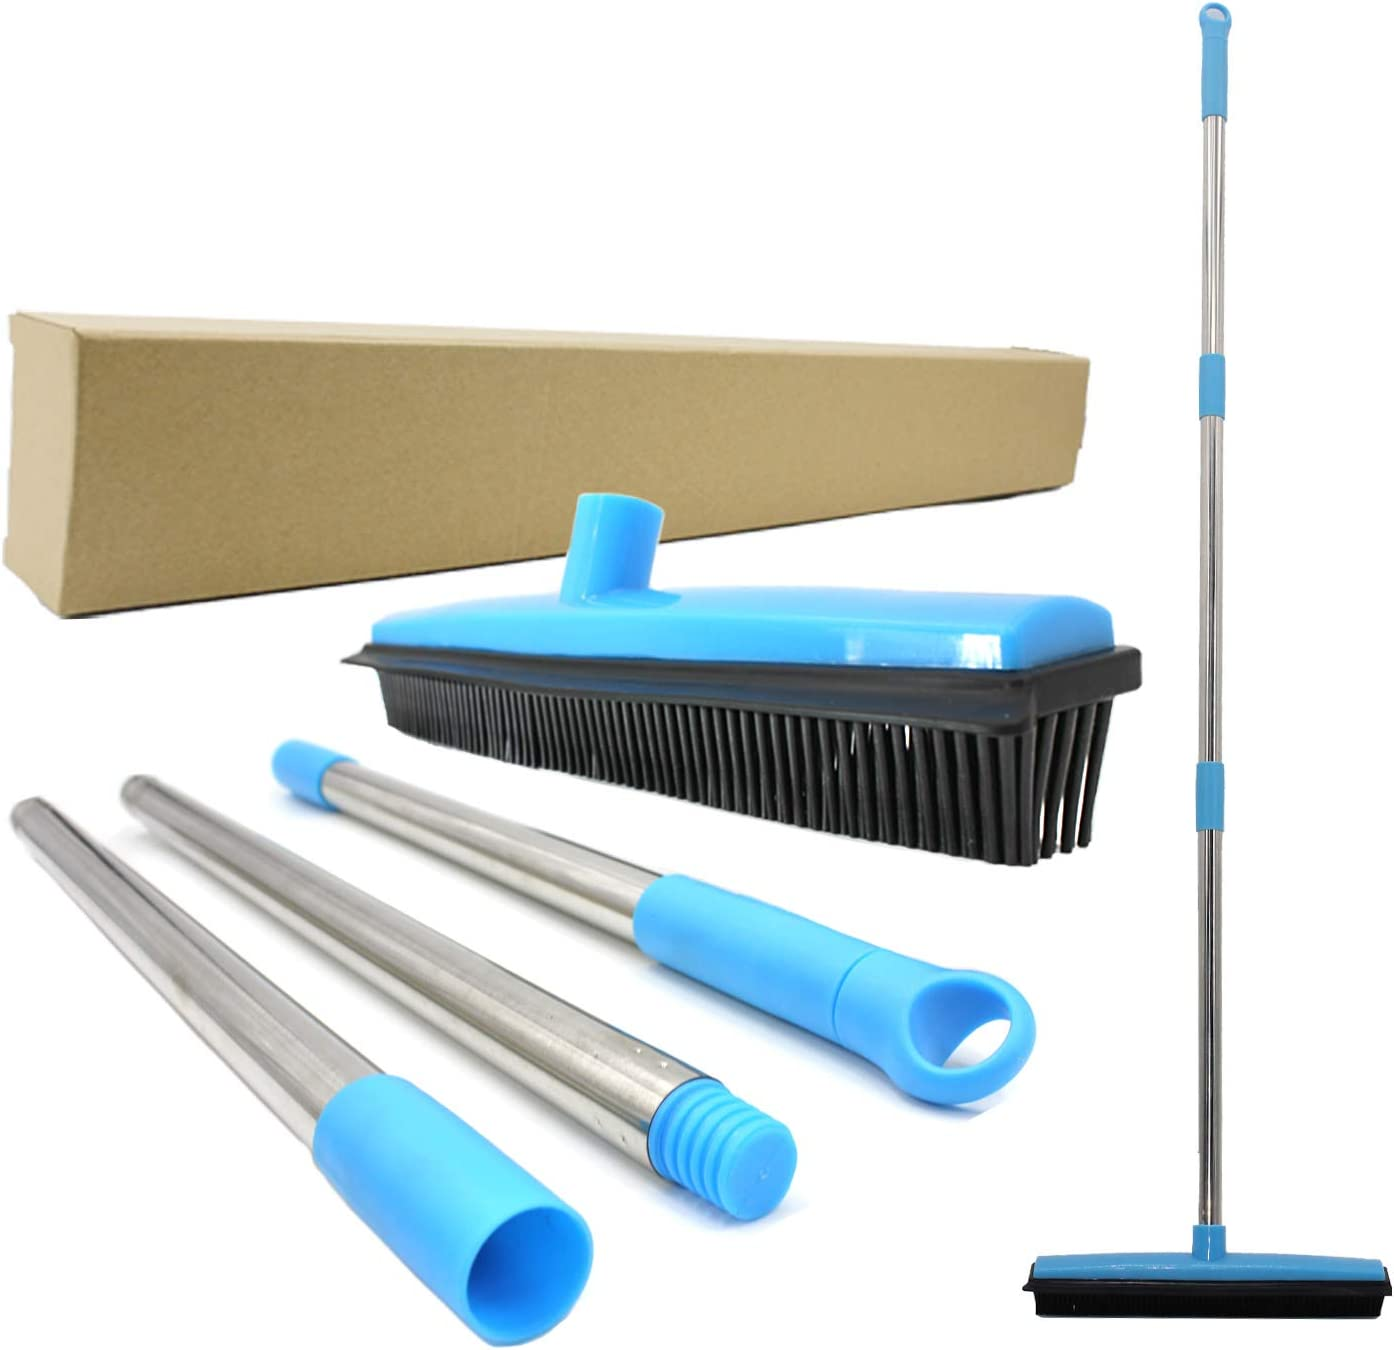 Wholesale Fang Shan Fur Buster Rubber Broom Hair - with New mail order Remov Pet Squeegee